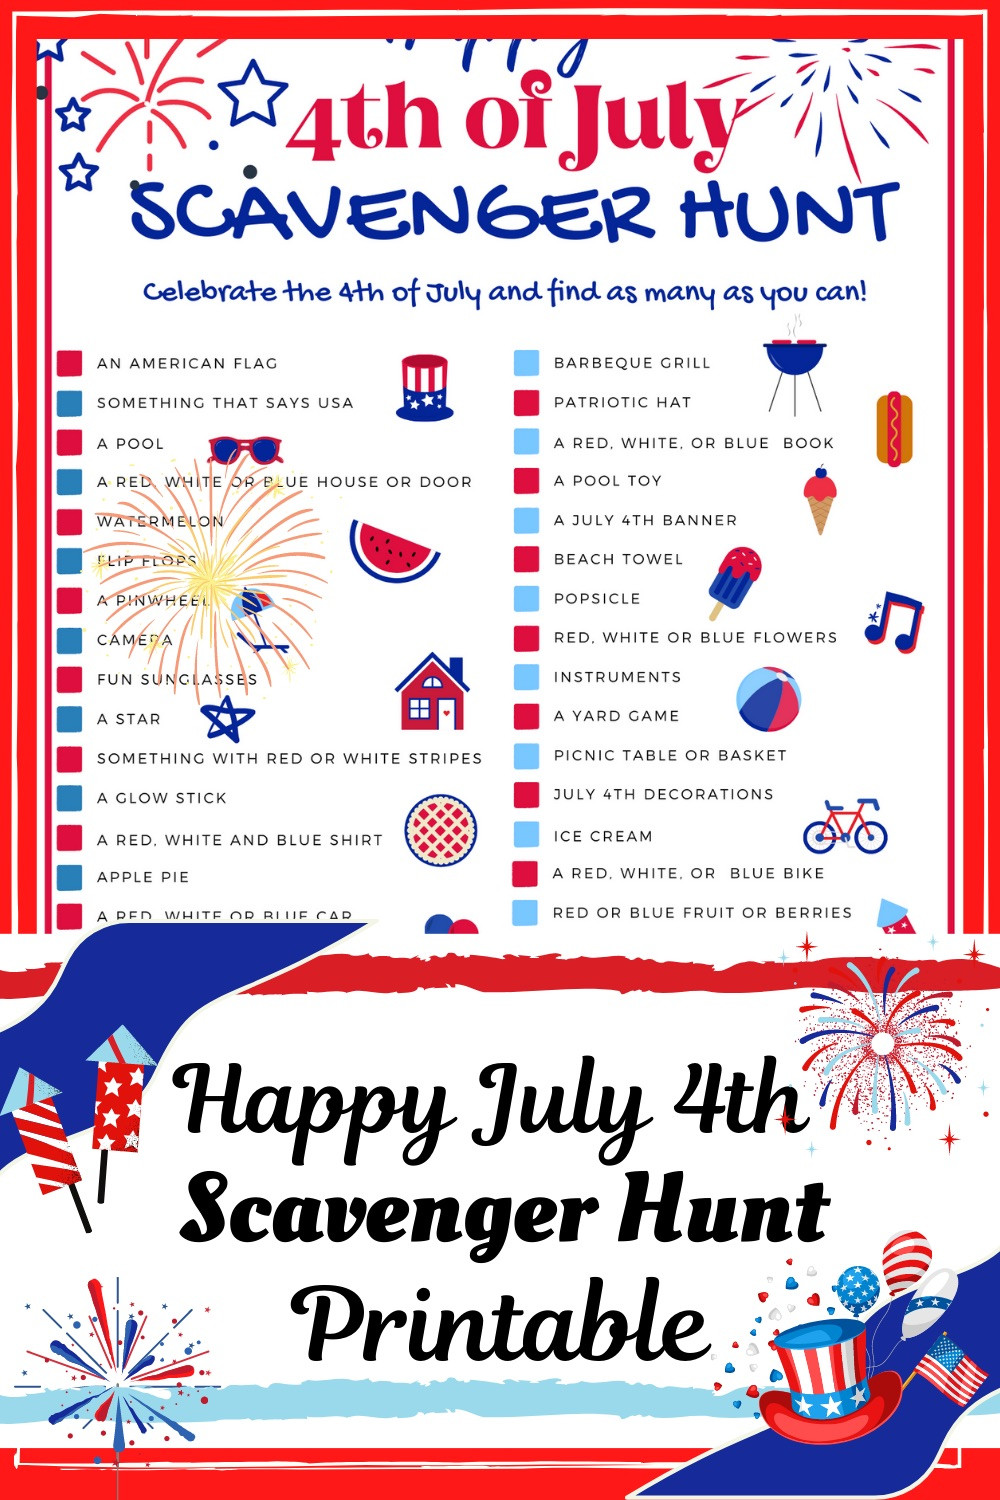 July 4th Scavenger Hunt printable etsy product fun for kids activity printable holiday family